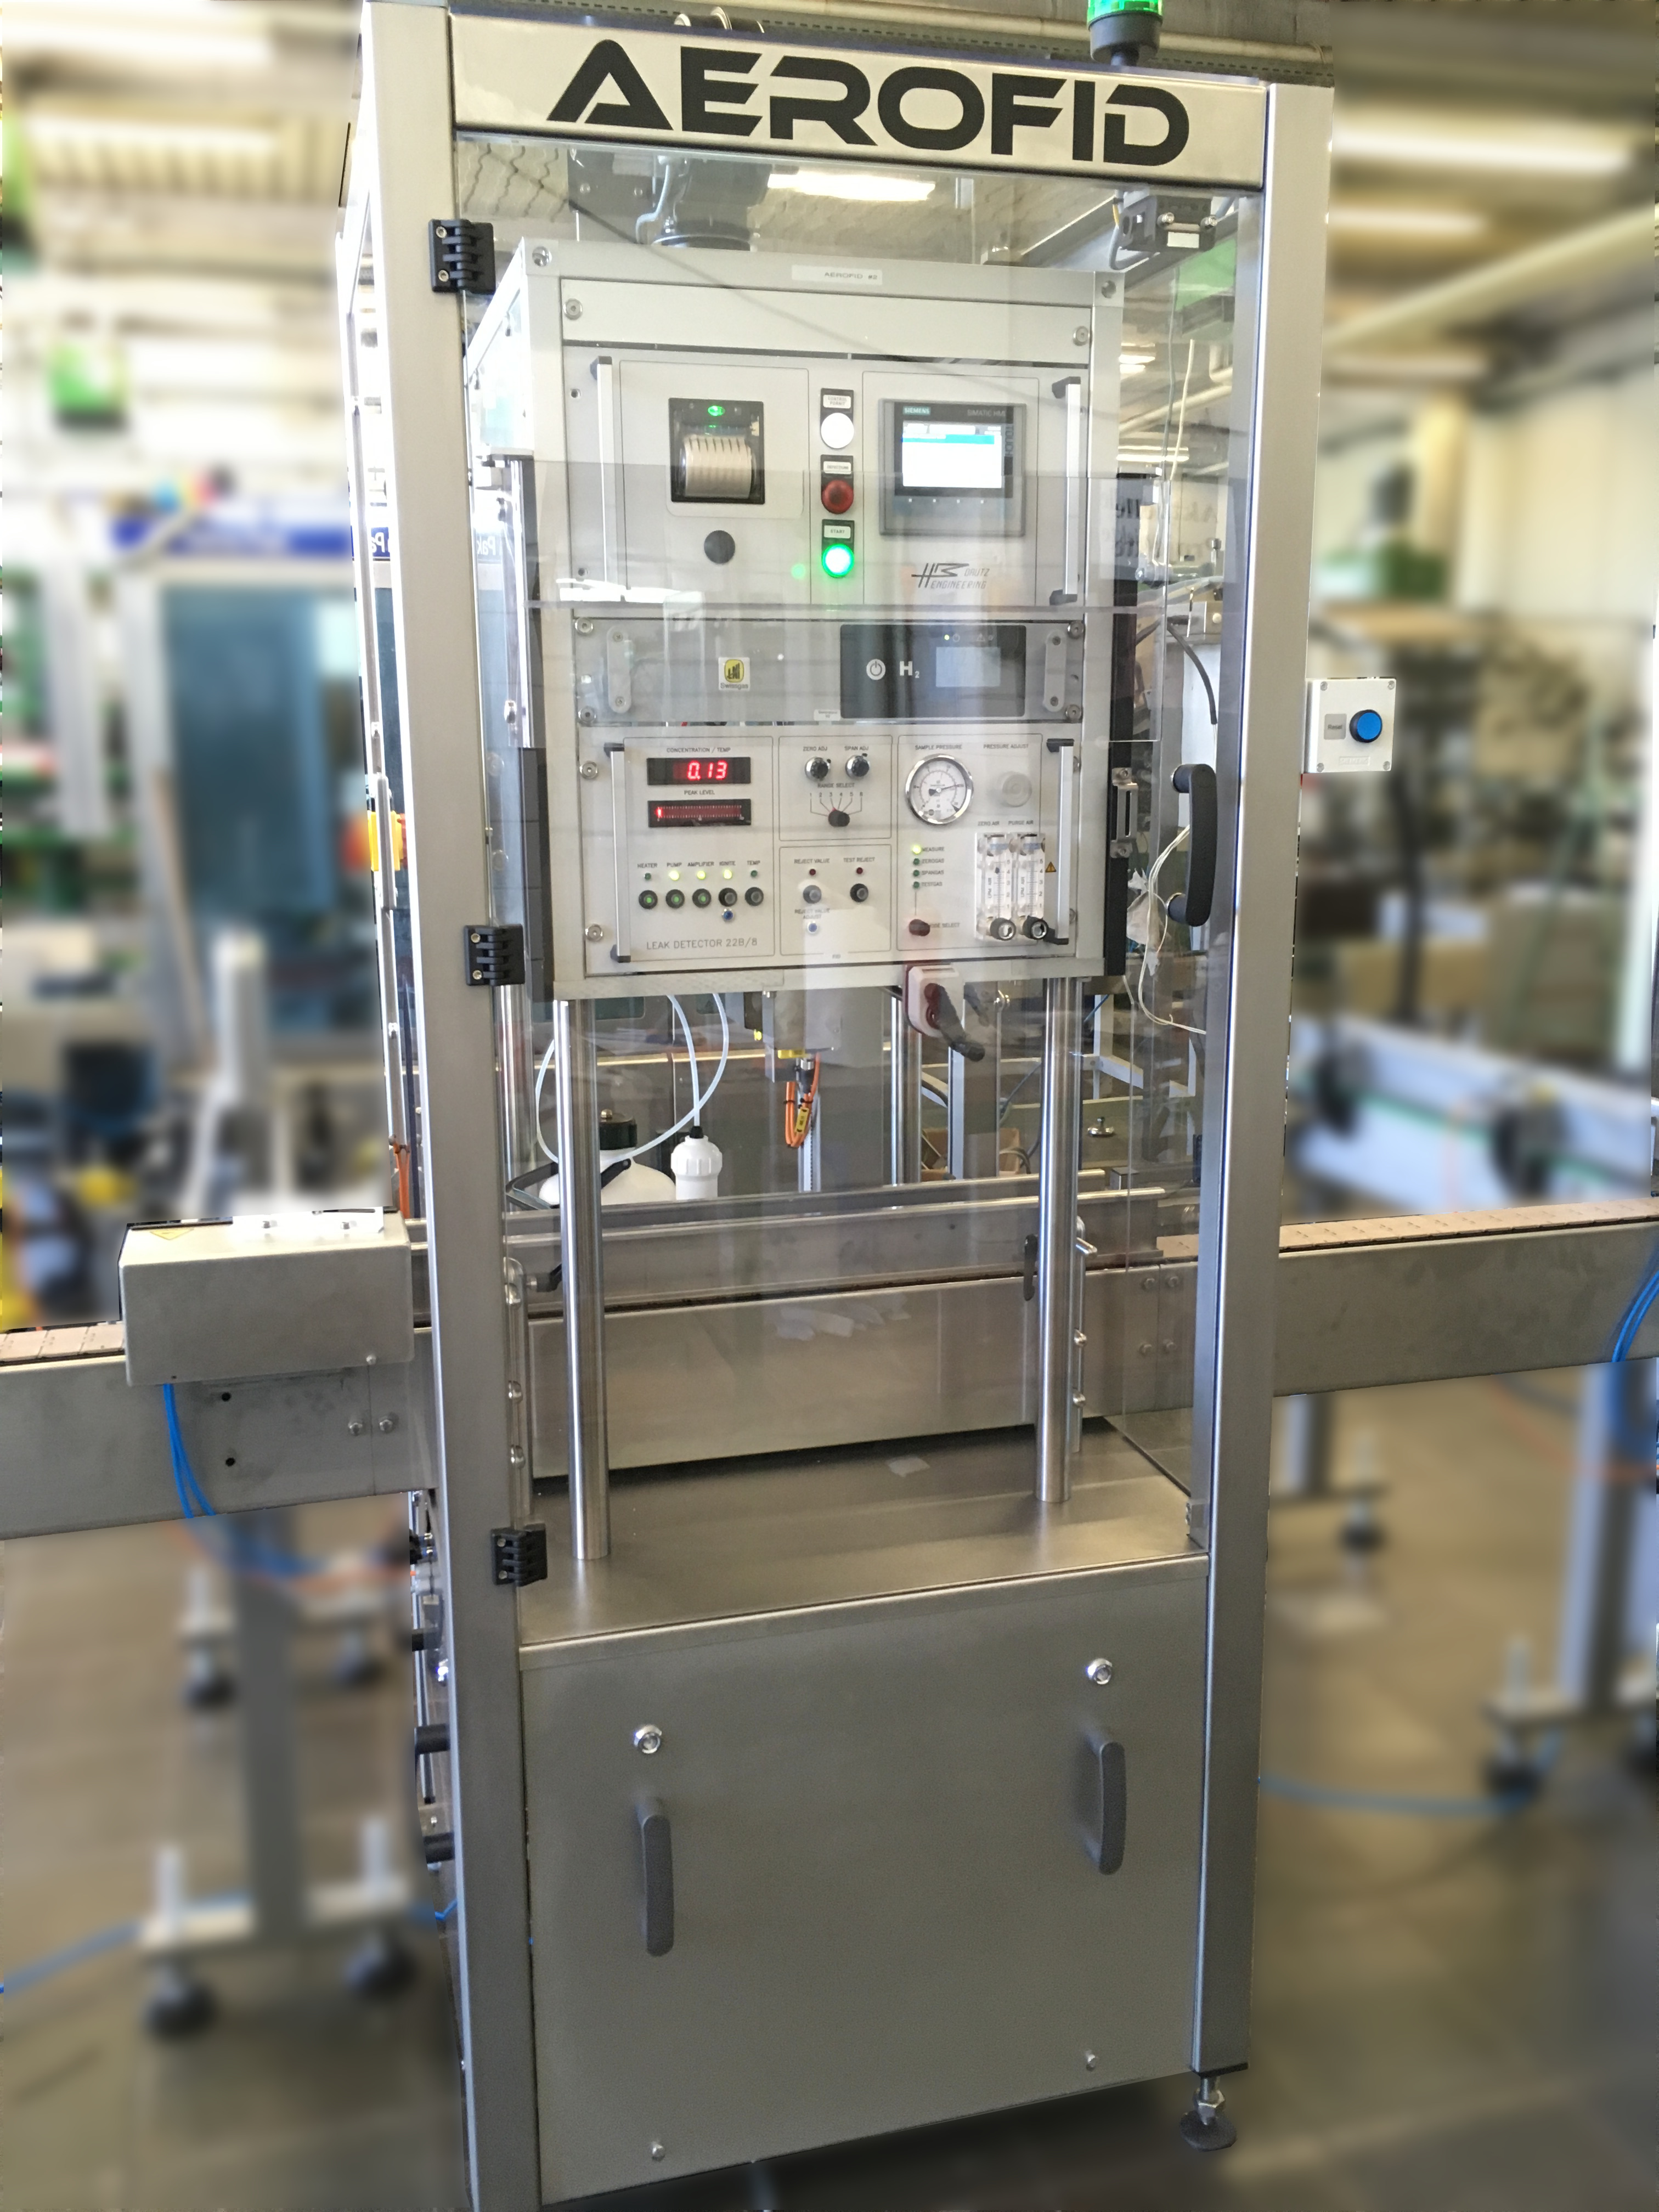 <ol><li>Fully Housed Machine<li>Integrated Reject<li>Not at risk of poisoning or contamination<li>Approved by VCA as part of water bath alternative<li>Detect leaks anywhere on can<li>In Aerosol industry for over 25 years<li>Easy fast Calibration</ol>